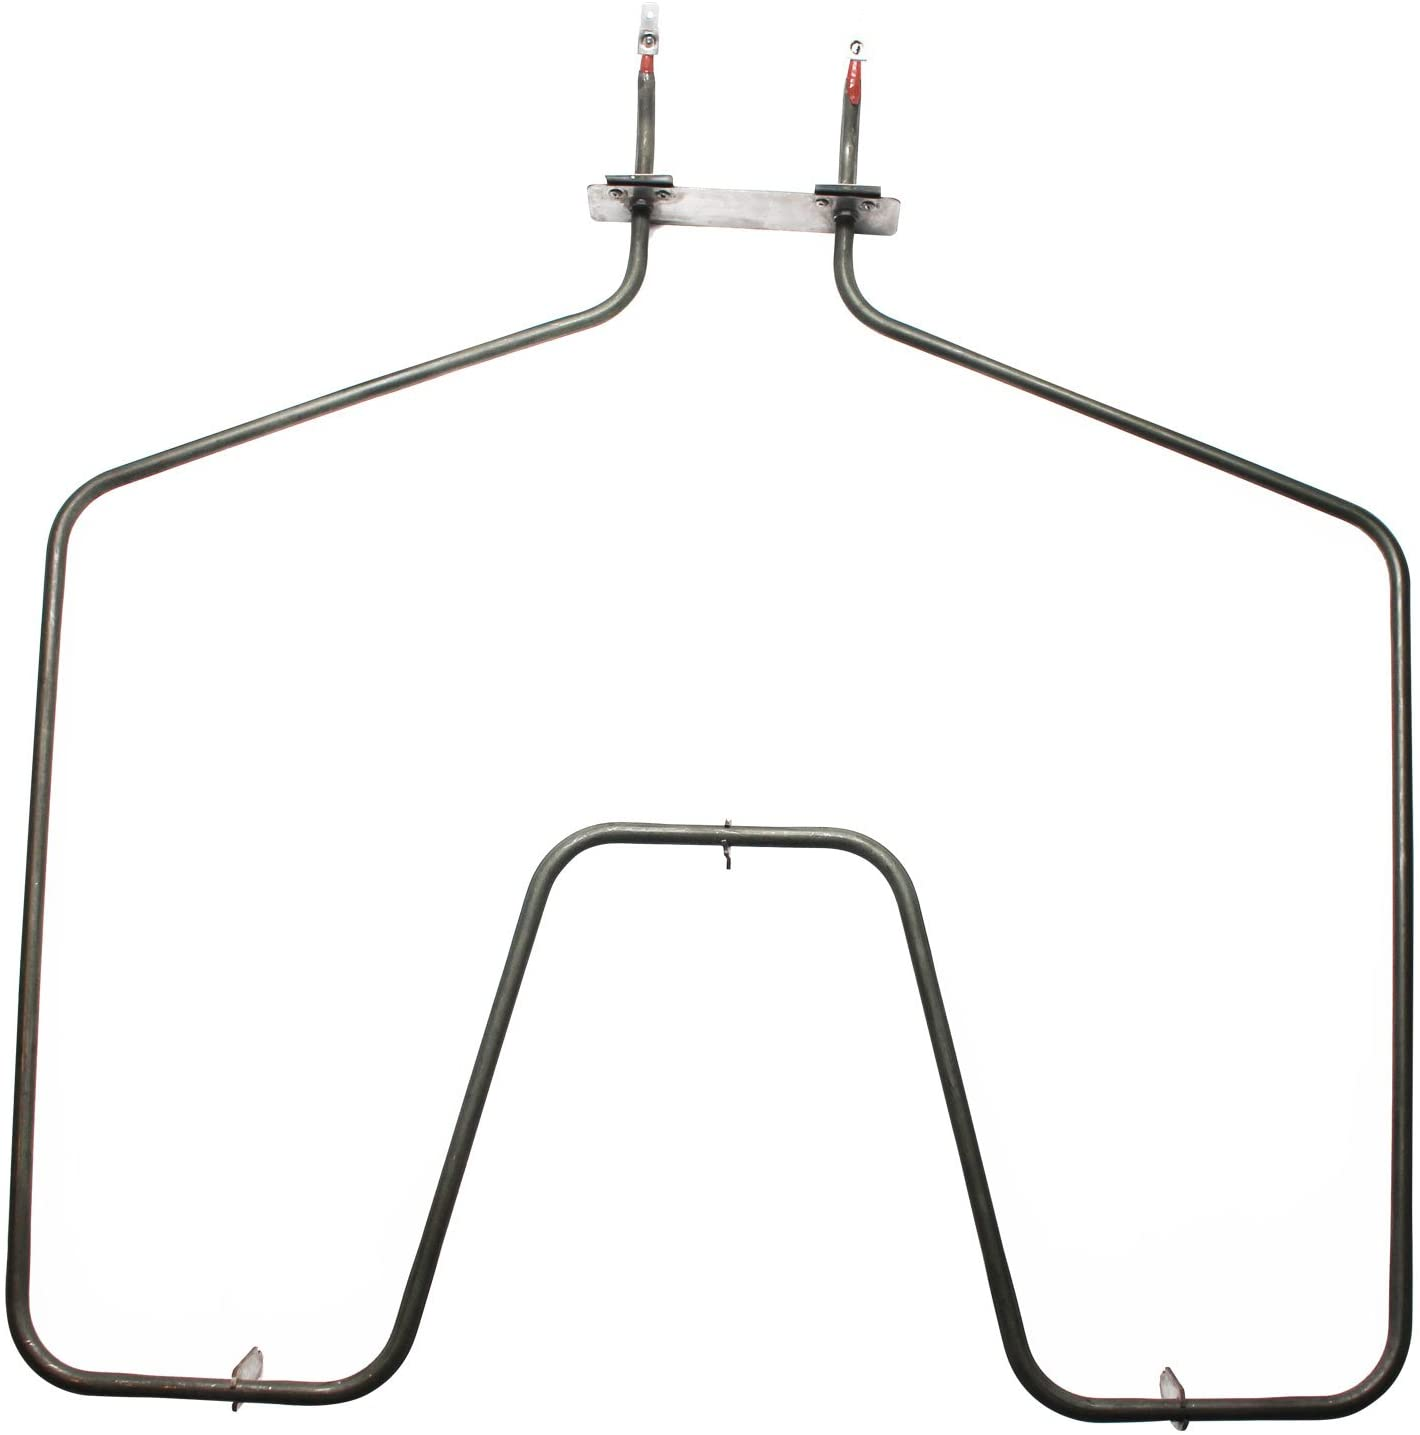 UpStart Components Replacement for General Electric JBS03C3WH Bake Element - Compatible with General Electric WB44K10005 Oven Heating Element